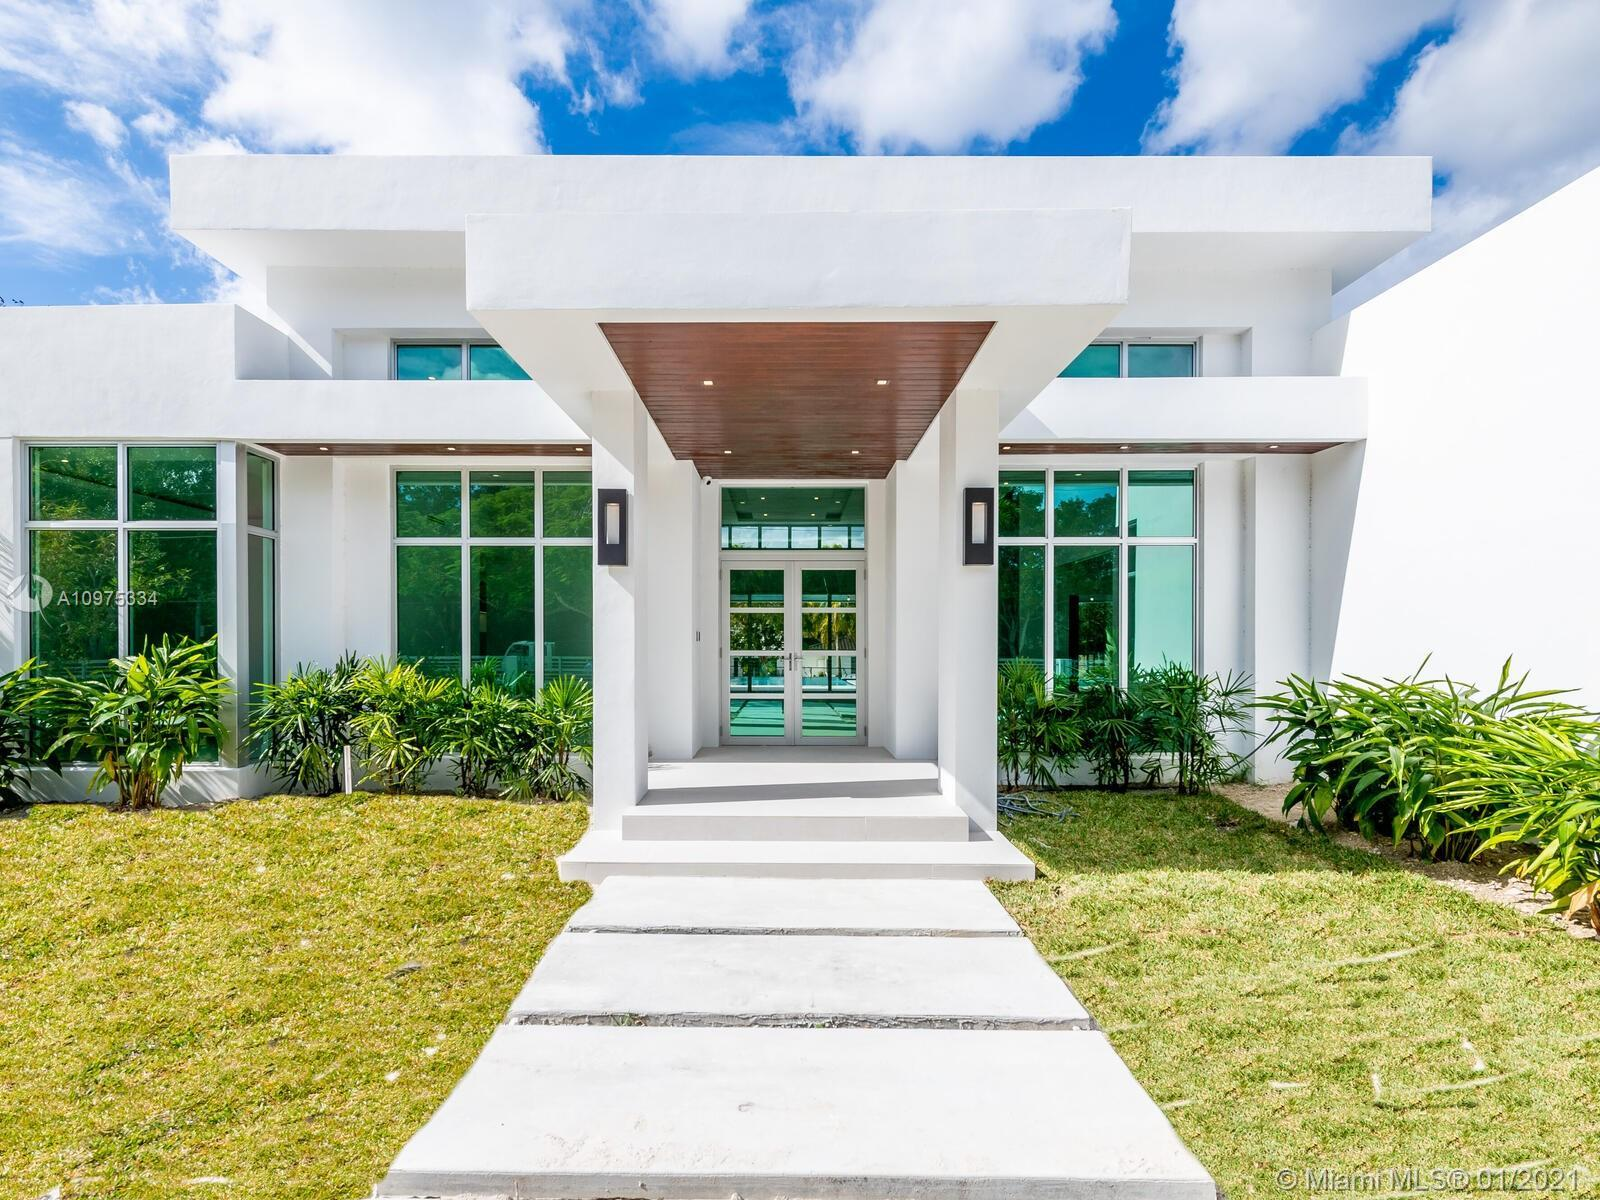 A BAUHAUS INSPIRED ONE-ACRE LOT, BY RENOWNED ARCHITECT MARK REARDON. SURROUNDED BY THE ELEGANT CORAL